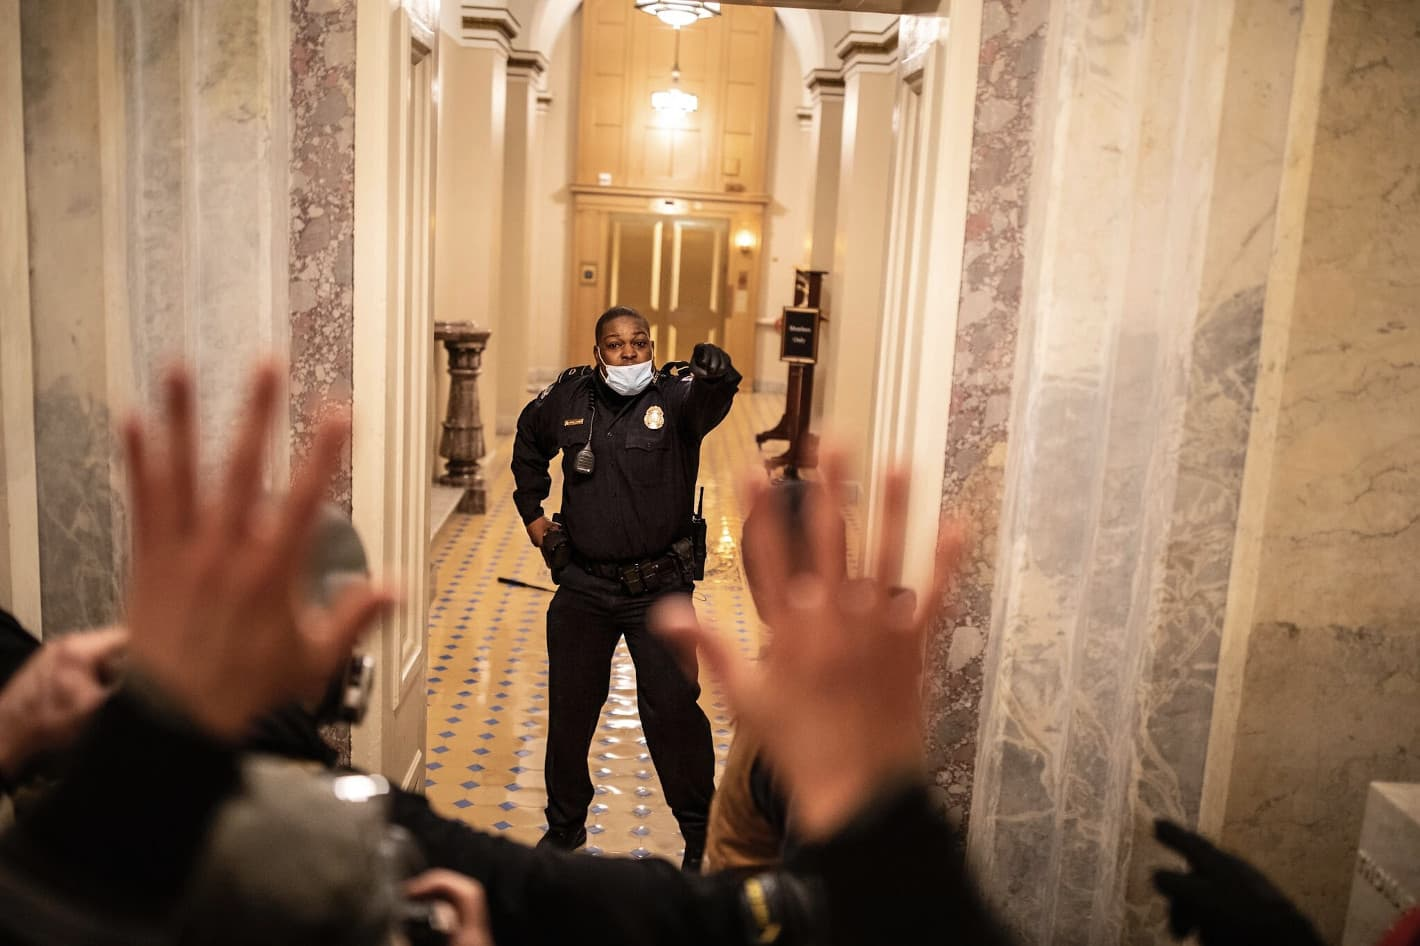 Officer Eugene Goodman facing down insurrectionists in the US Capitol invasion